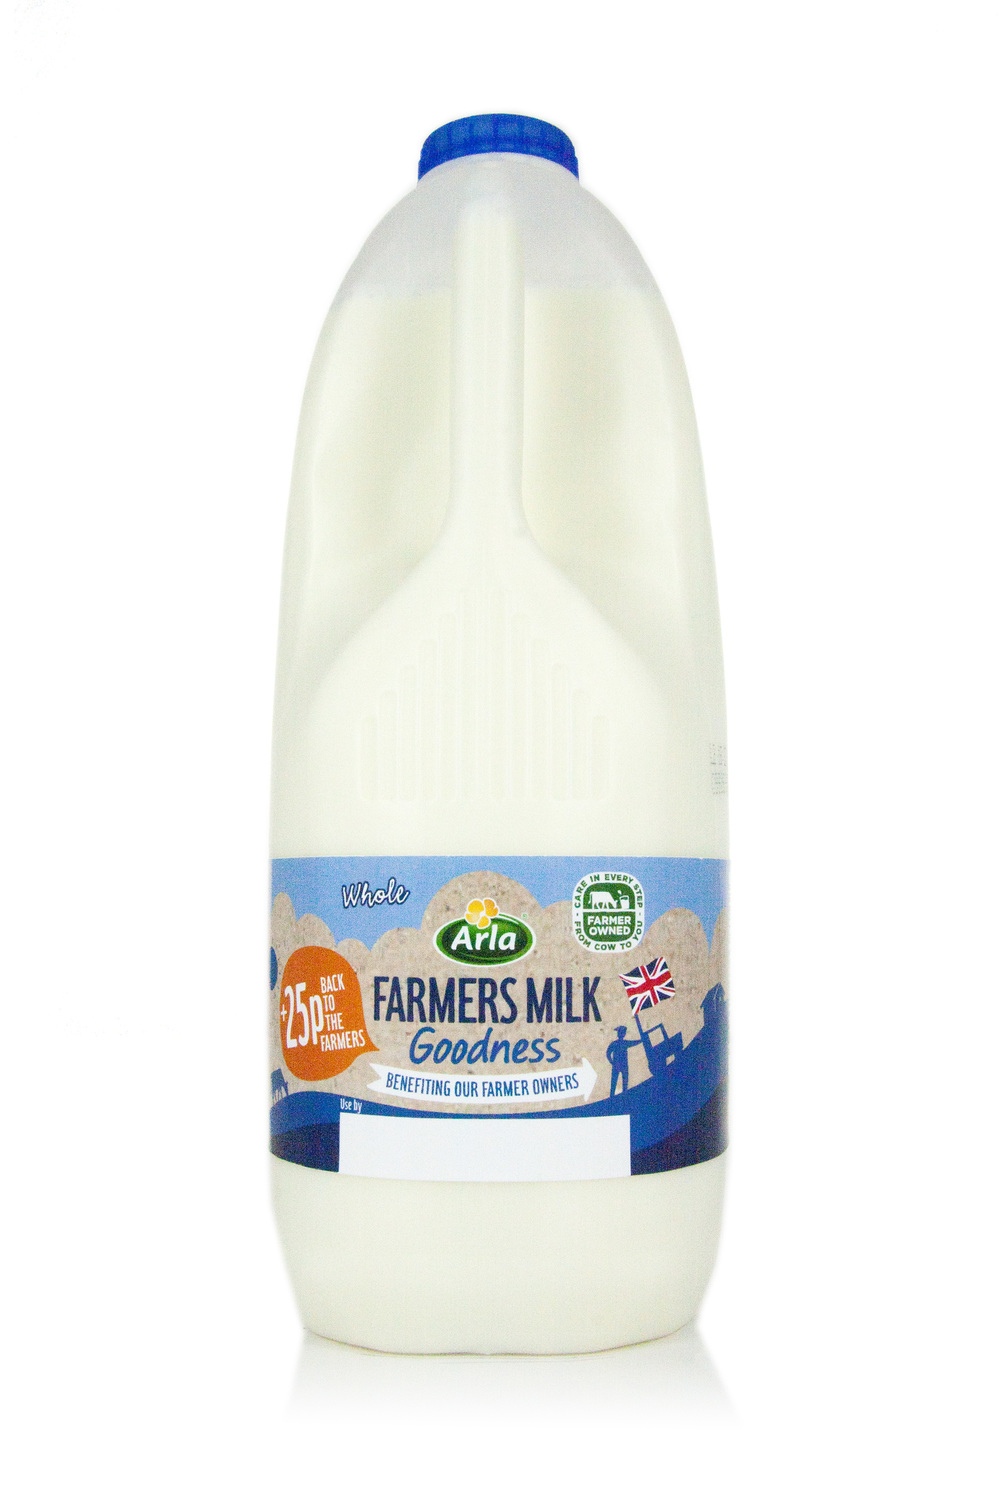 Pillbox Design – Bespoke die cut label packaging prototype of Arla Farmers Milk 4pt